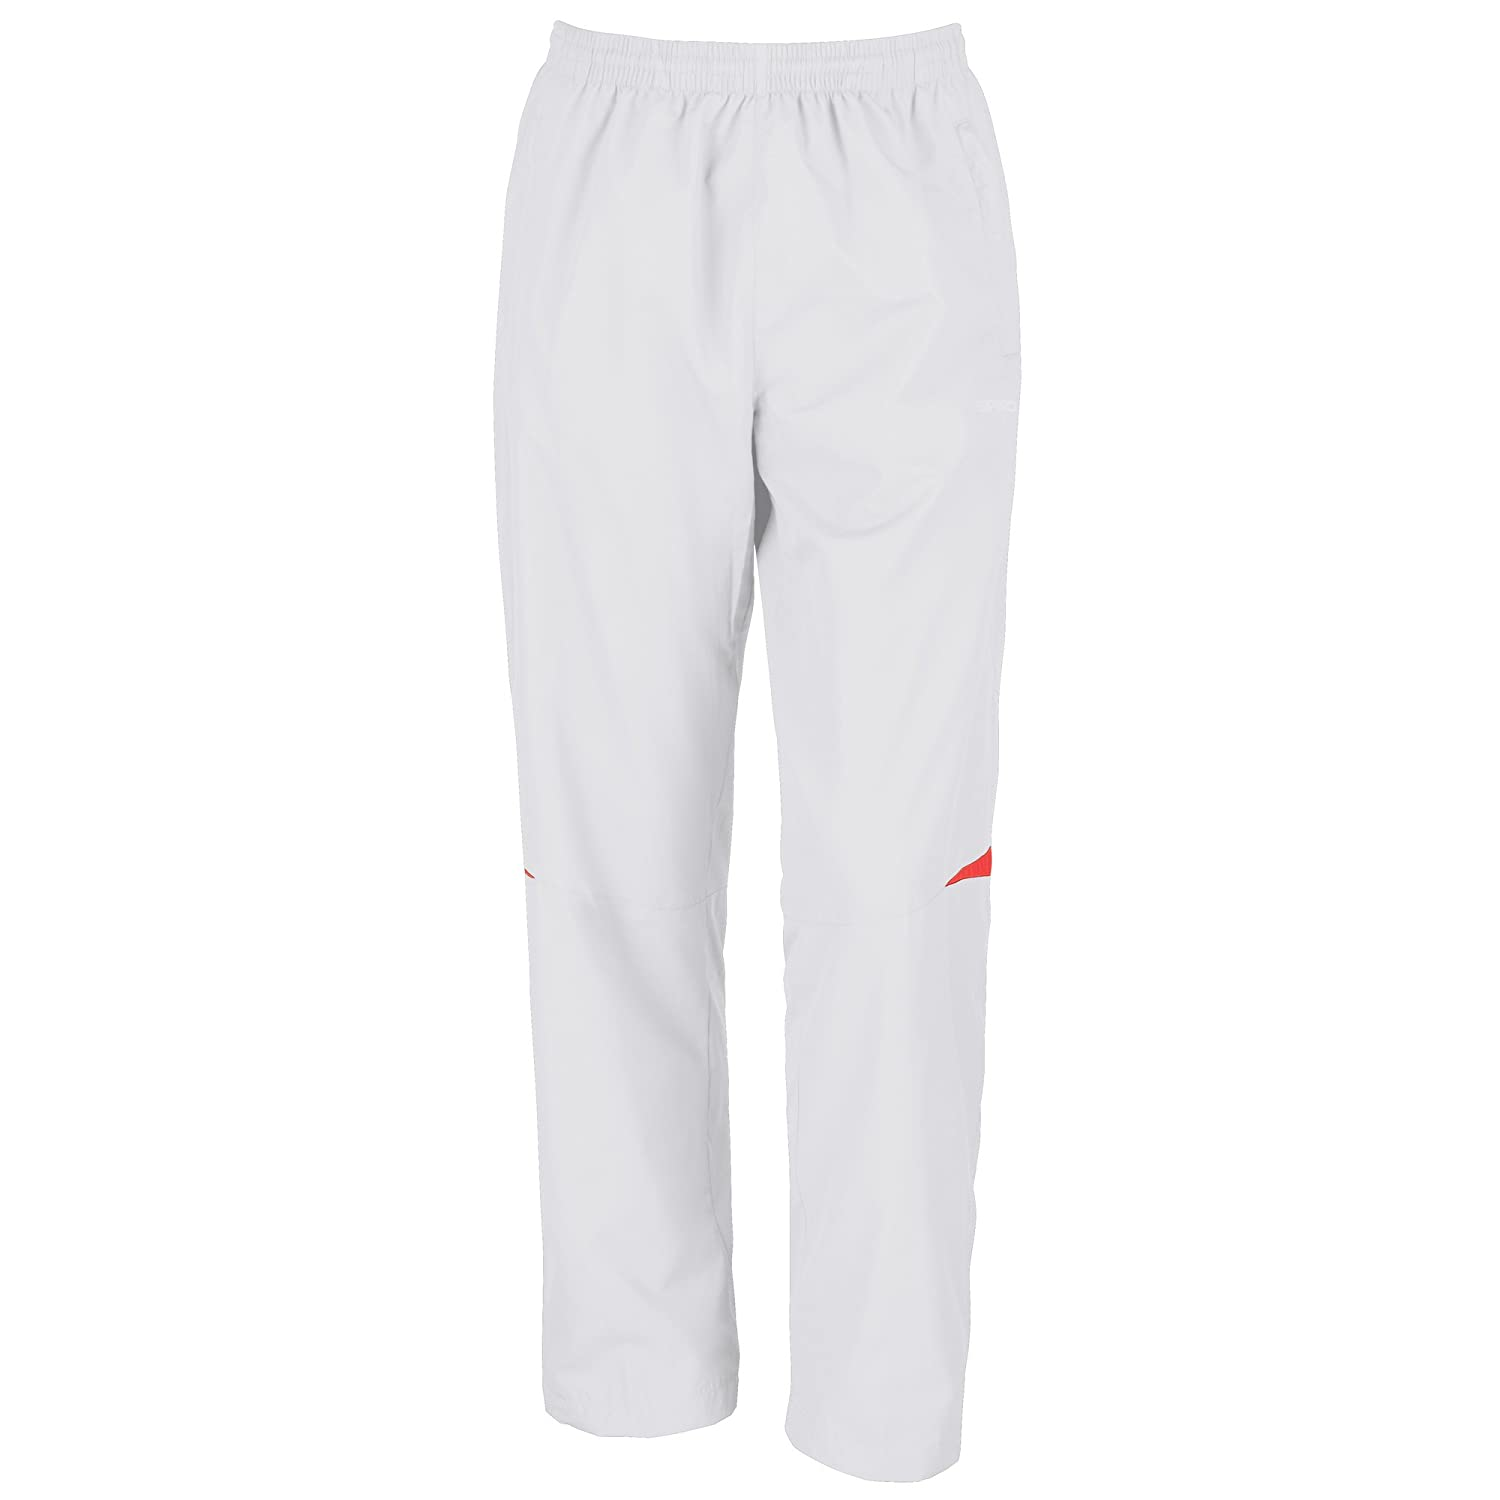 Spiro Mens Micro-Lite Performance Sports Pants/Tracksuit Bottoms